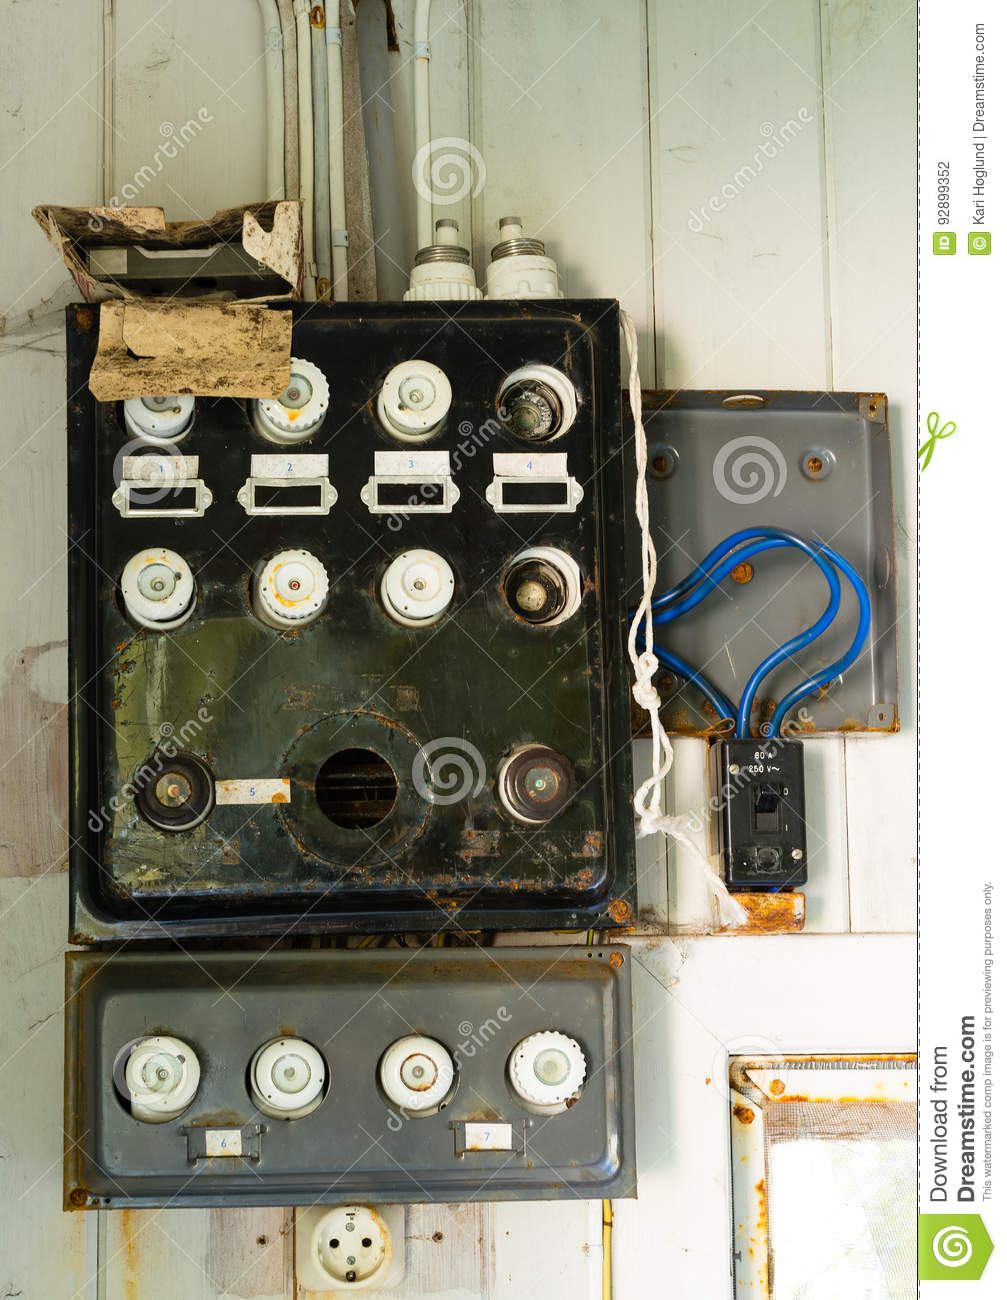 hight resolution of old fuse box in an old abandoned house